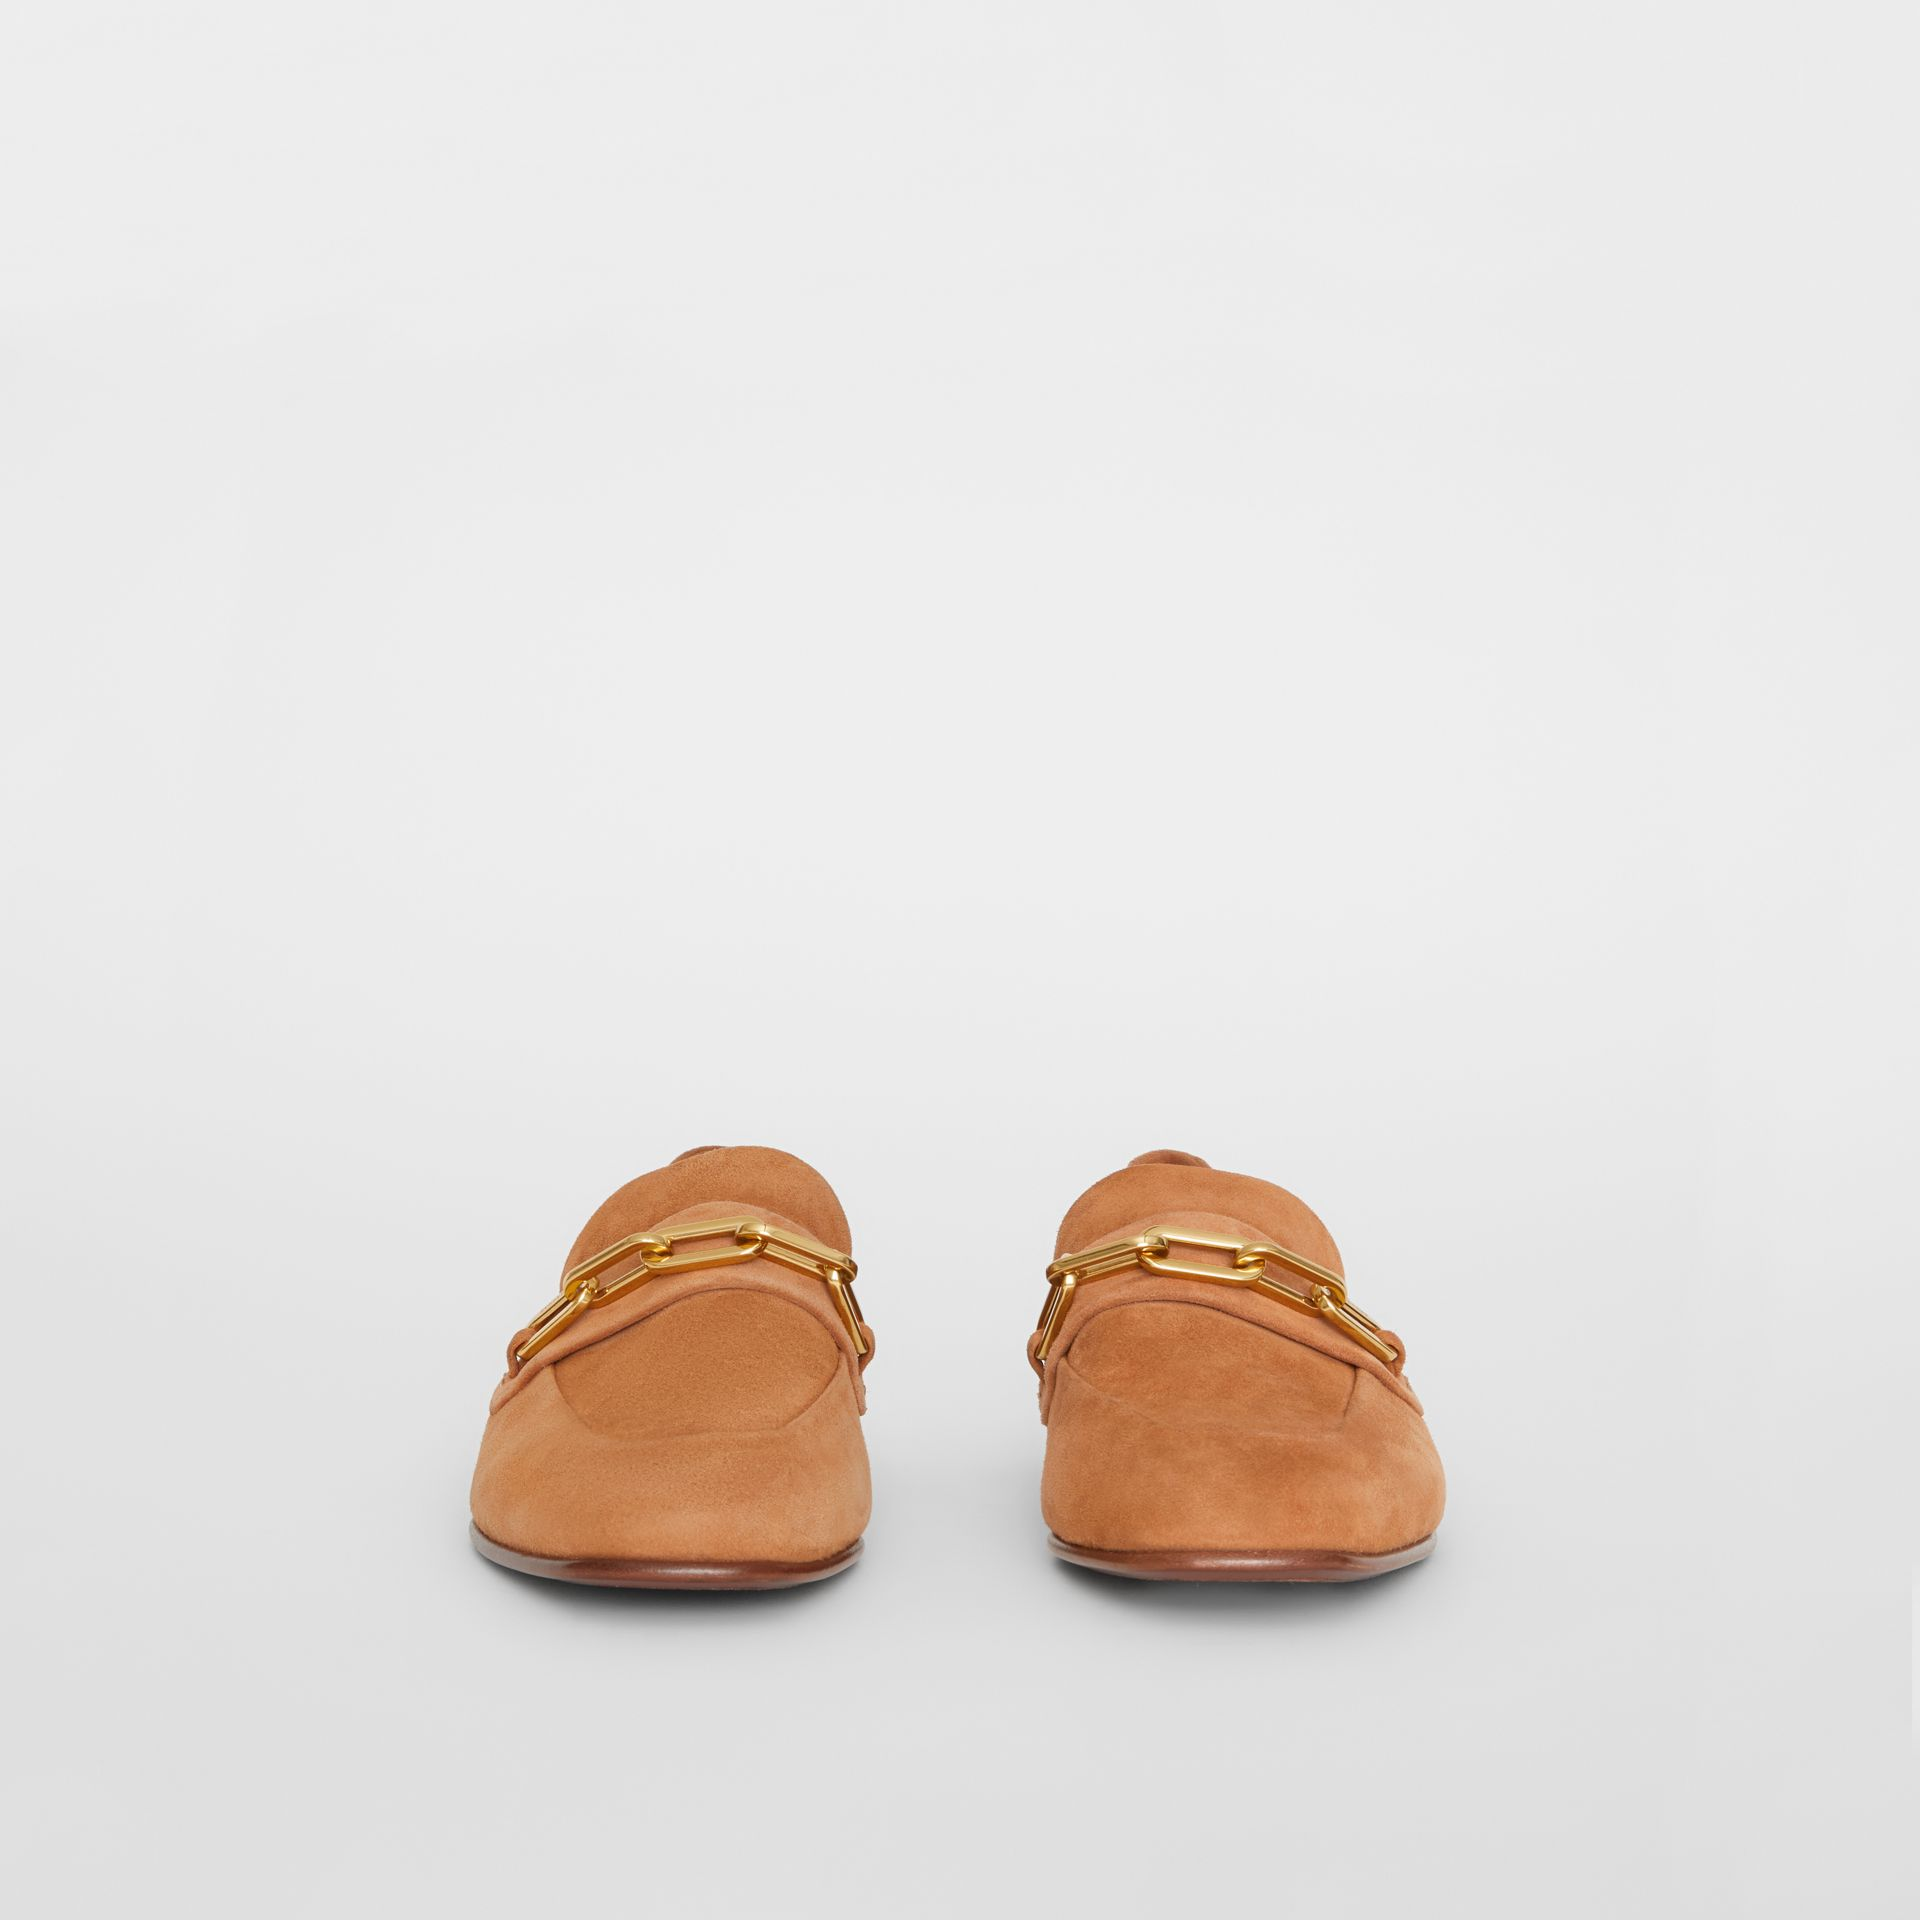 Link Detail Suede Loafers in Mid Camel - Women | Burberry United Kingdom - gallery image 3